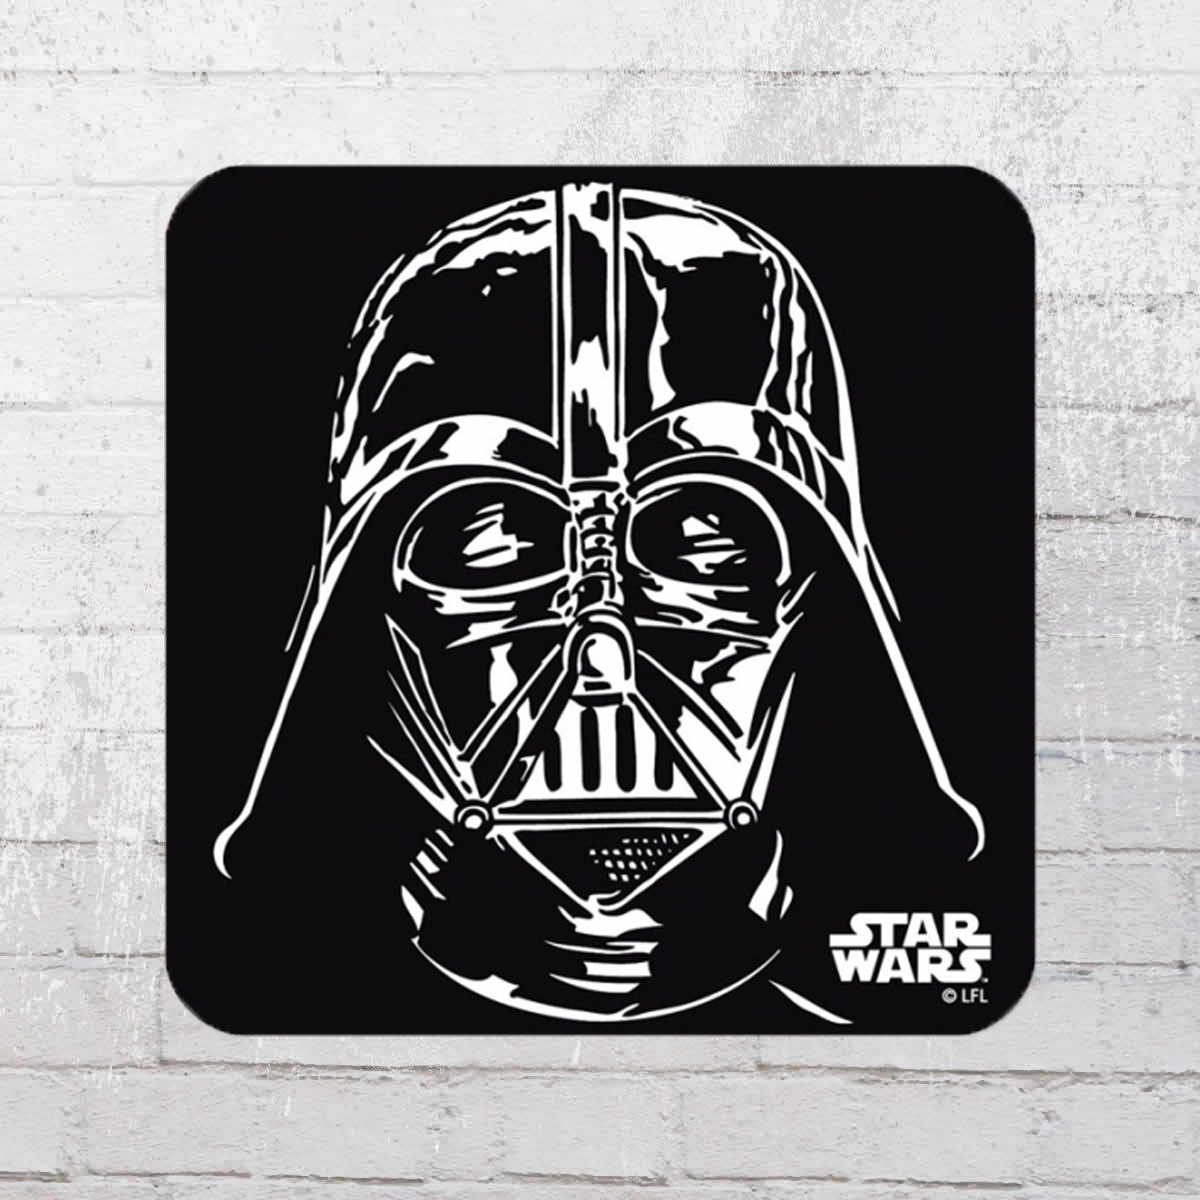 Order now logoshirt star wars darth vader coaster black for Darth vader black and white